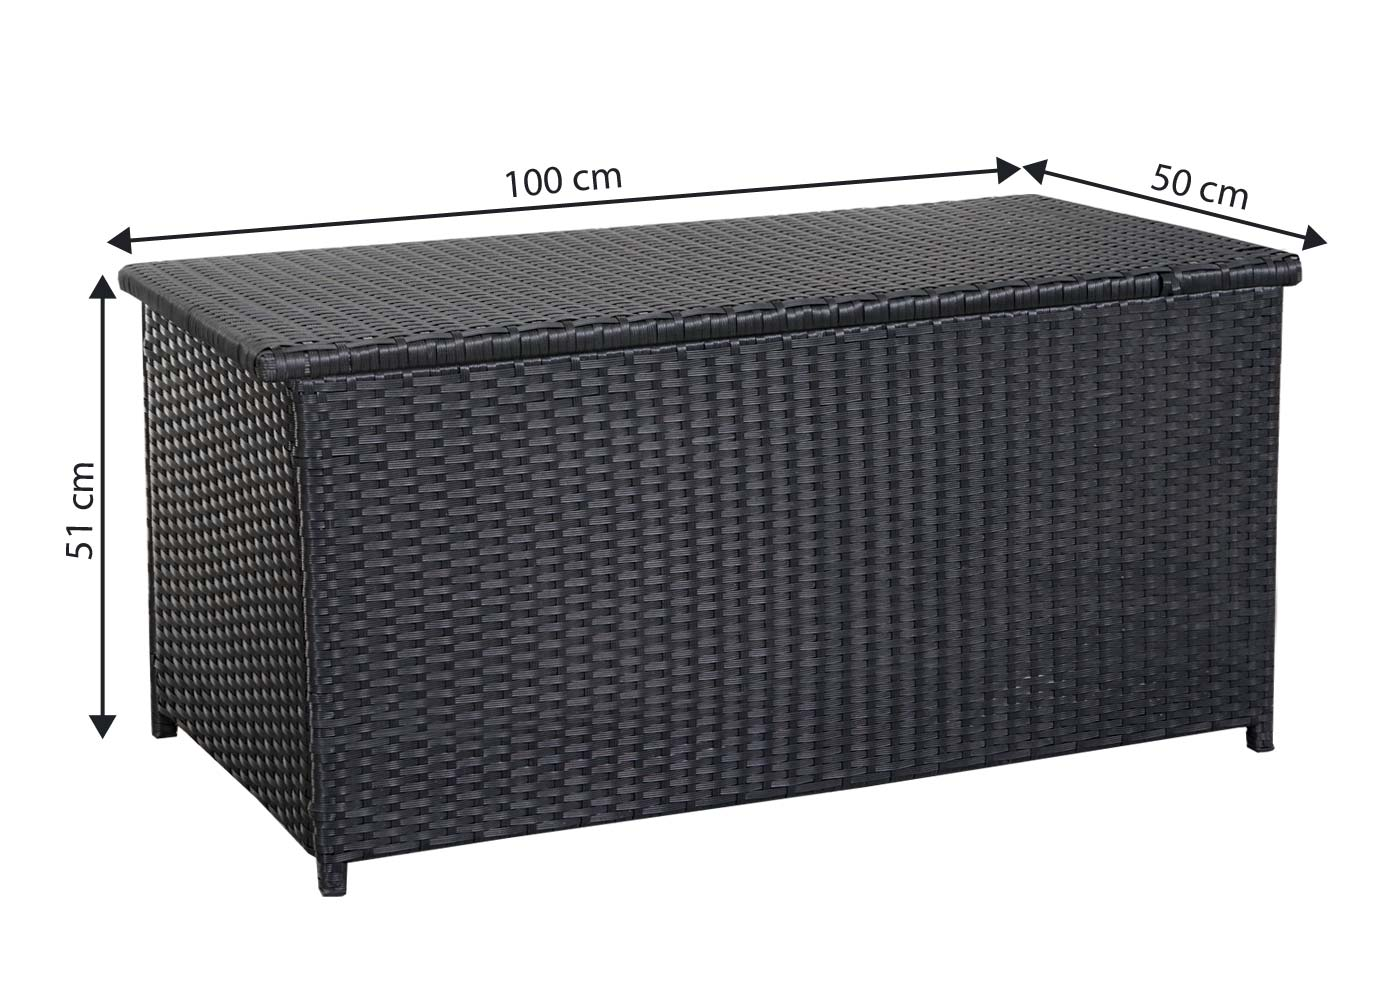 poly rattan kissenbox mcw d43 truhe auflagenbox gartentruhe 51x100x50cm 160l schwarz. Black Bedroom Furniture Sets. Home Design Ideas